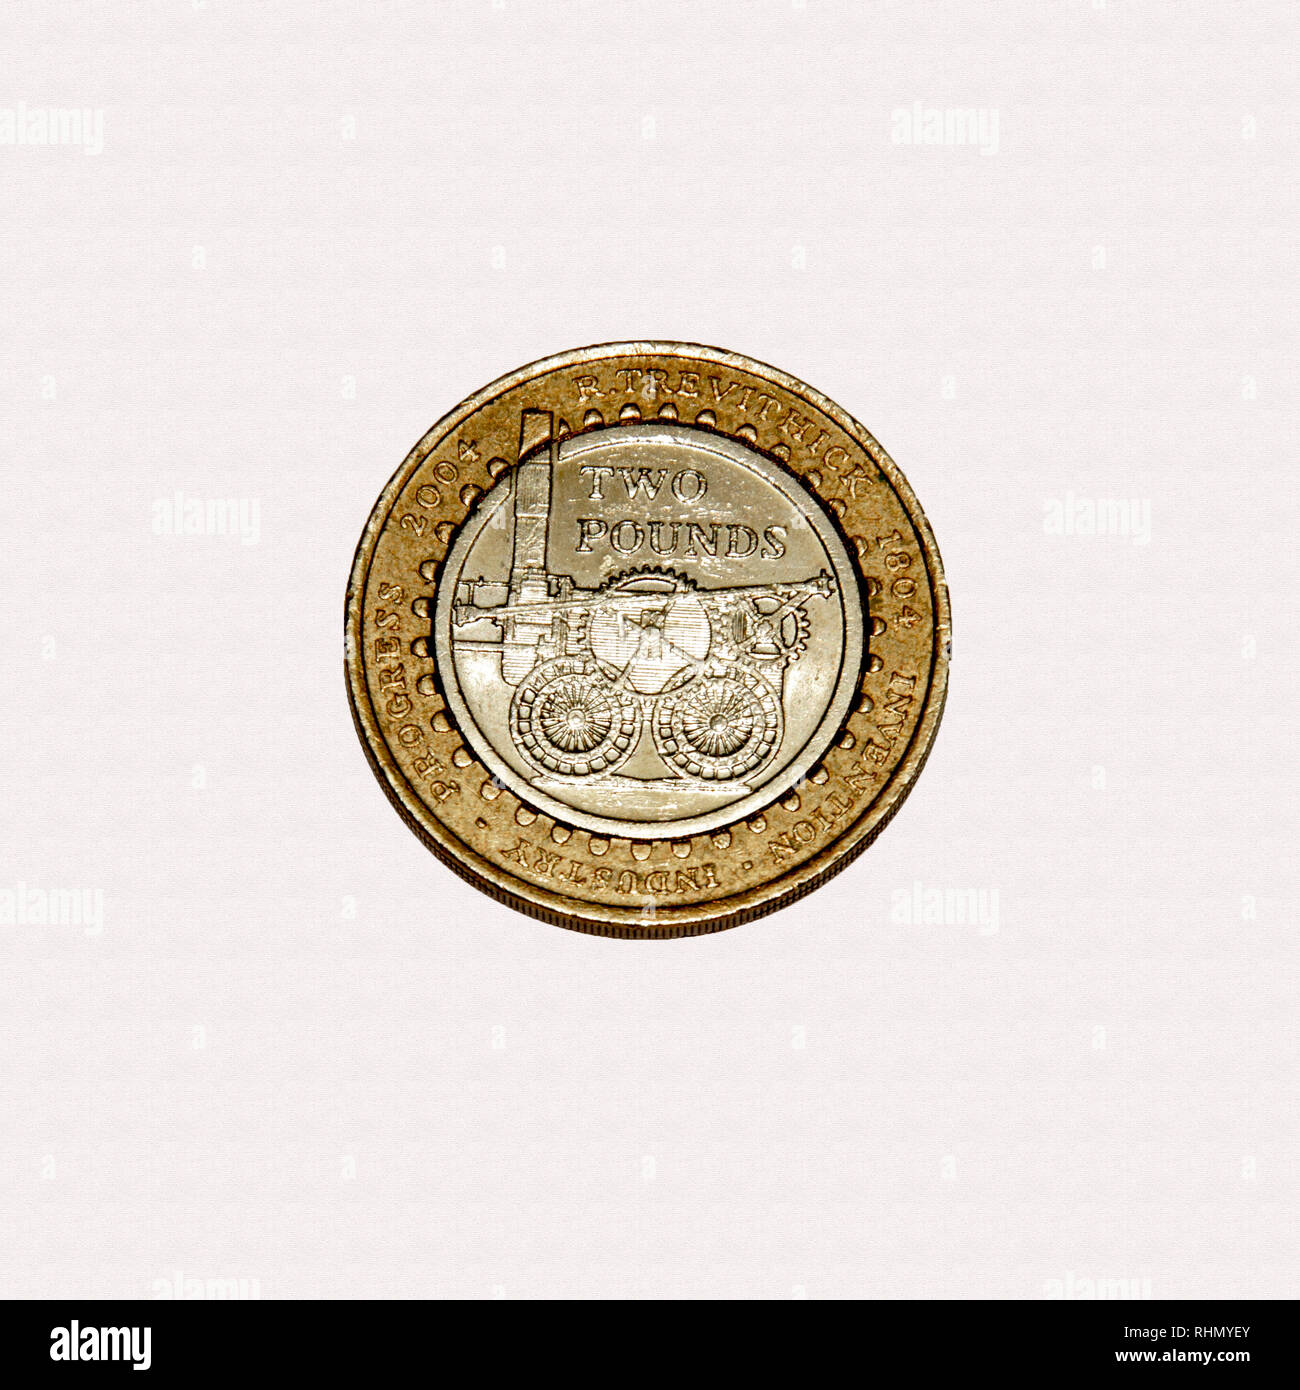 Limited edition British £2 coin commemorating Richard Trevithick first steam engine the Pennydarren at the start of the Industrial revolution Stock Photo